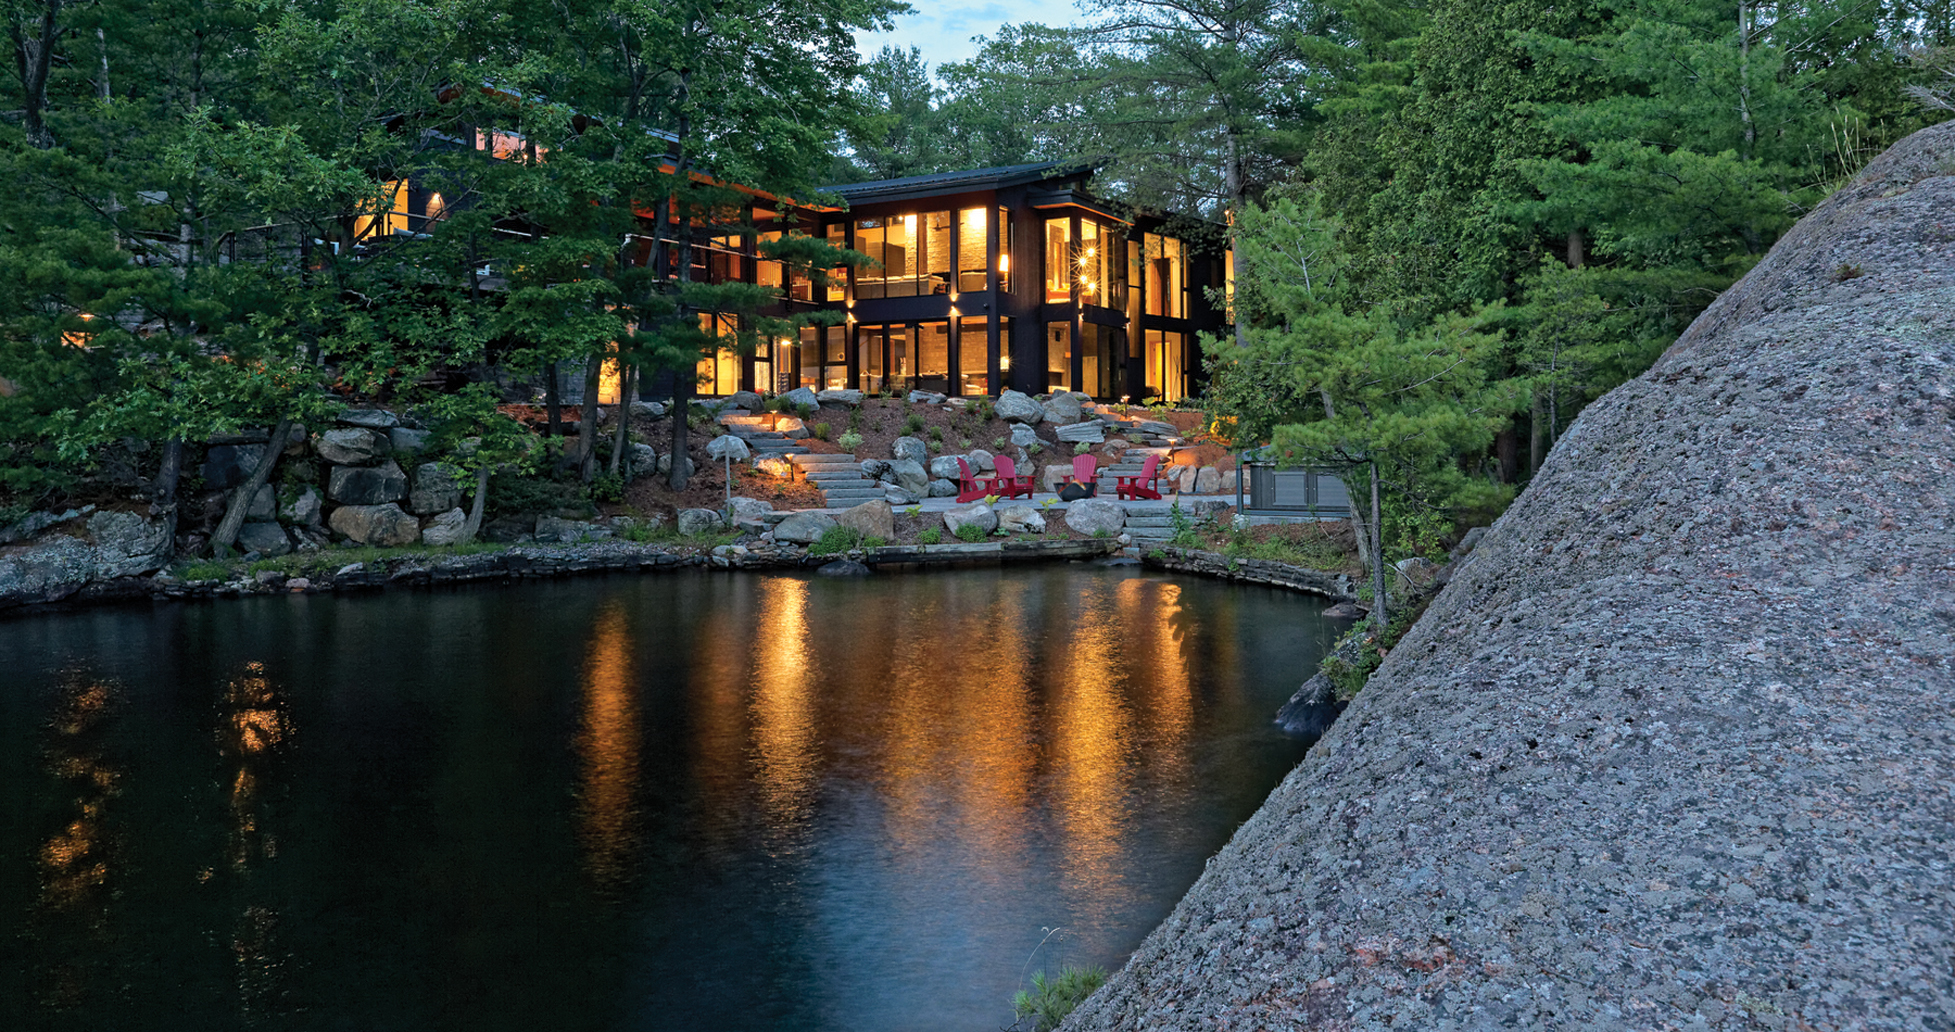 View from lake of red Muskoka chairs with stone staircase leading up to illuminated glazed cottage nestled in trees and rocks at dusk